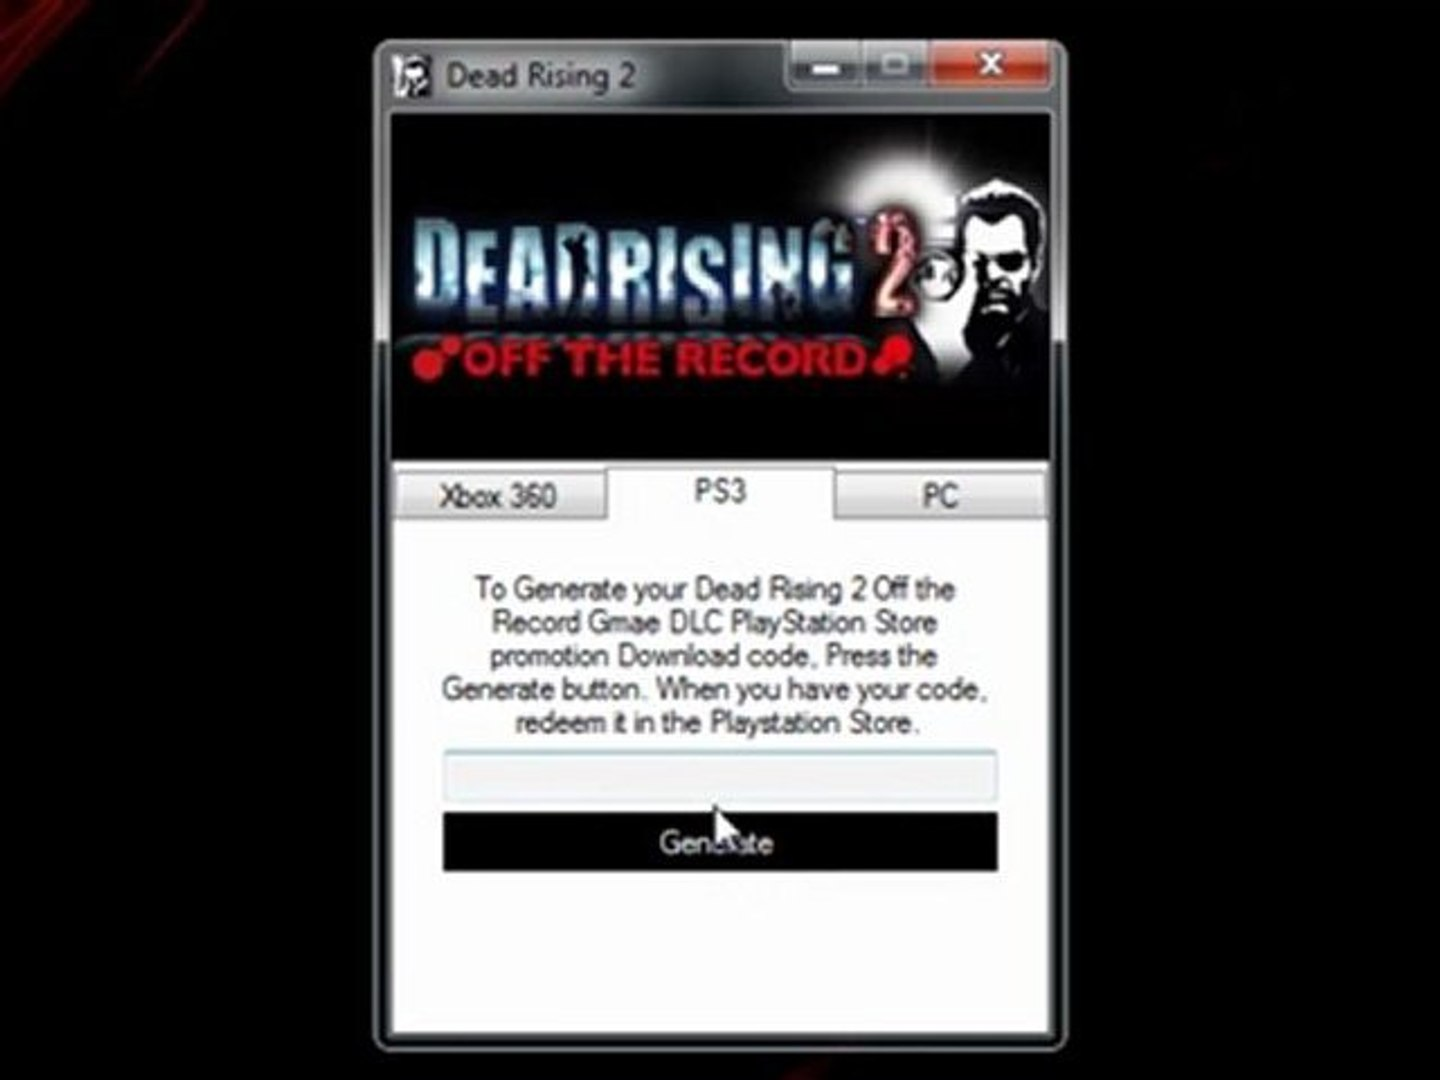 How To Install Dead Rising 2 Off The Record Game Free On Xbox 360